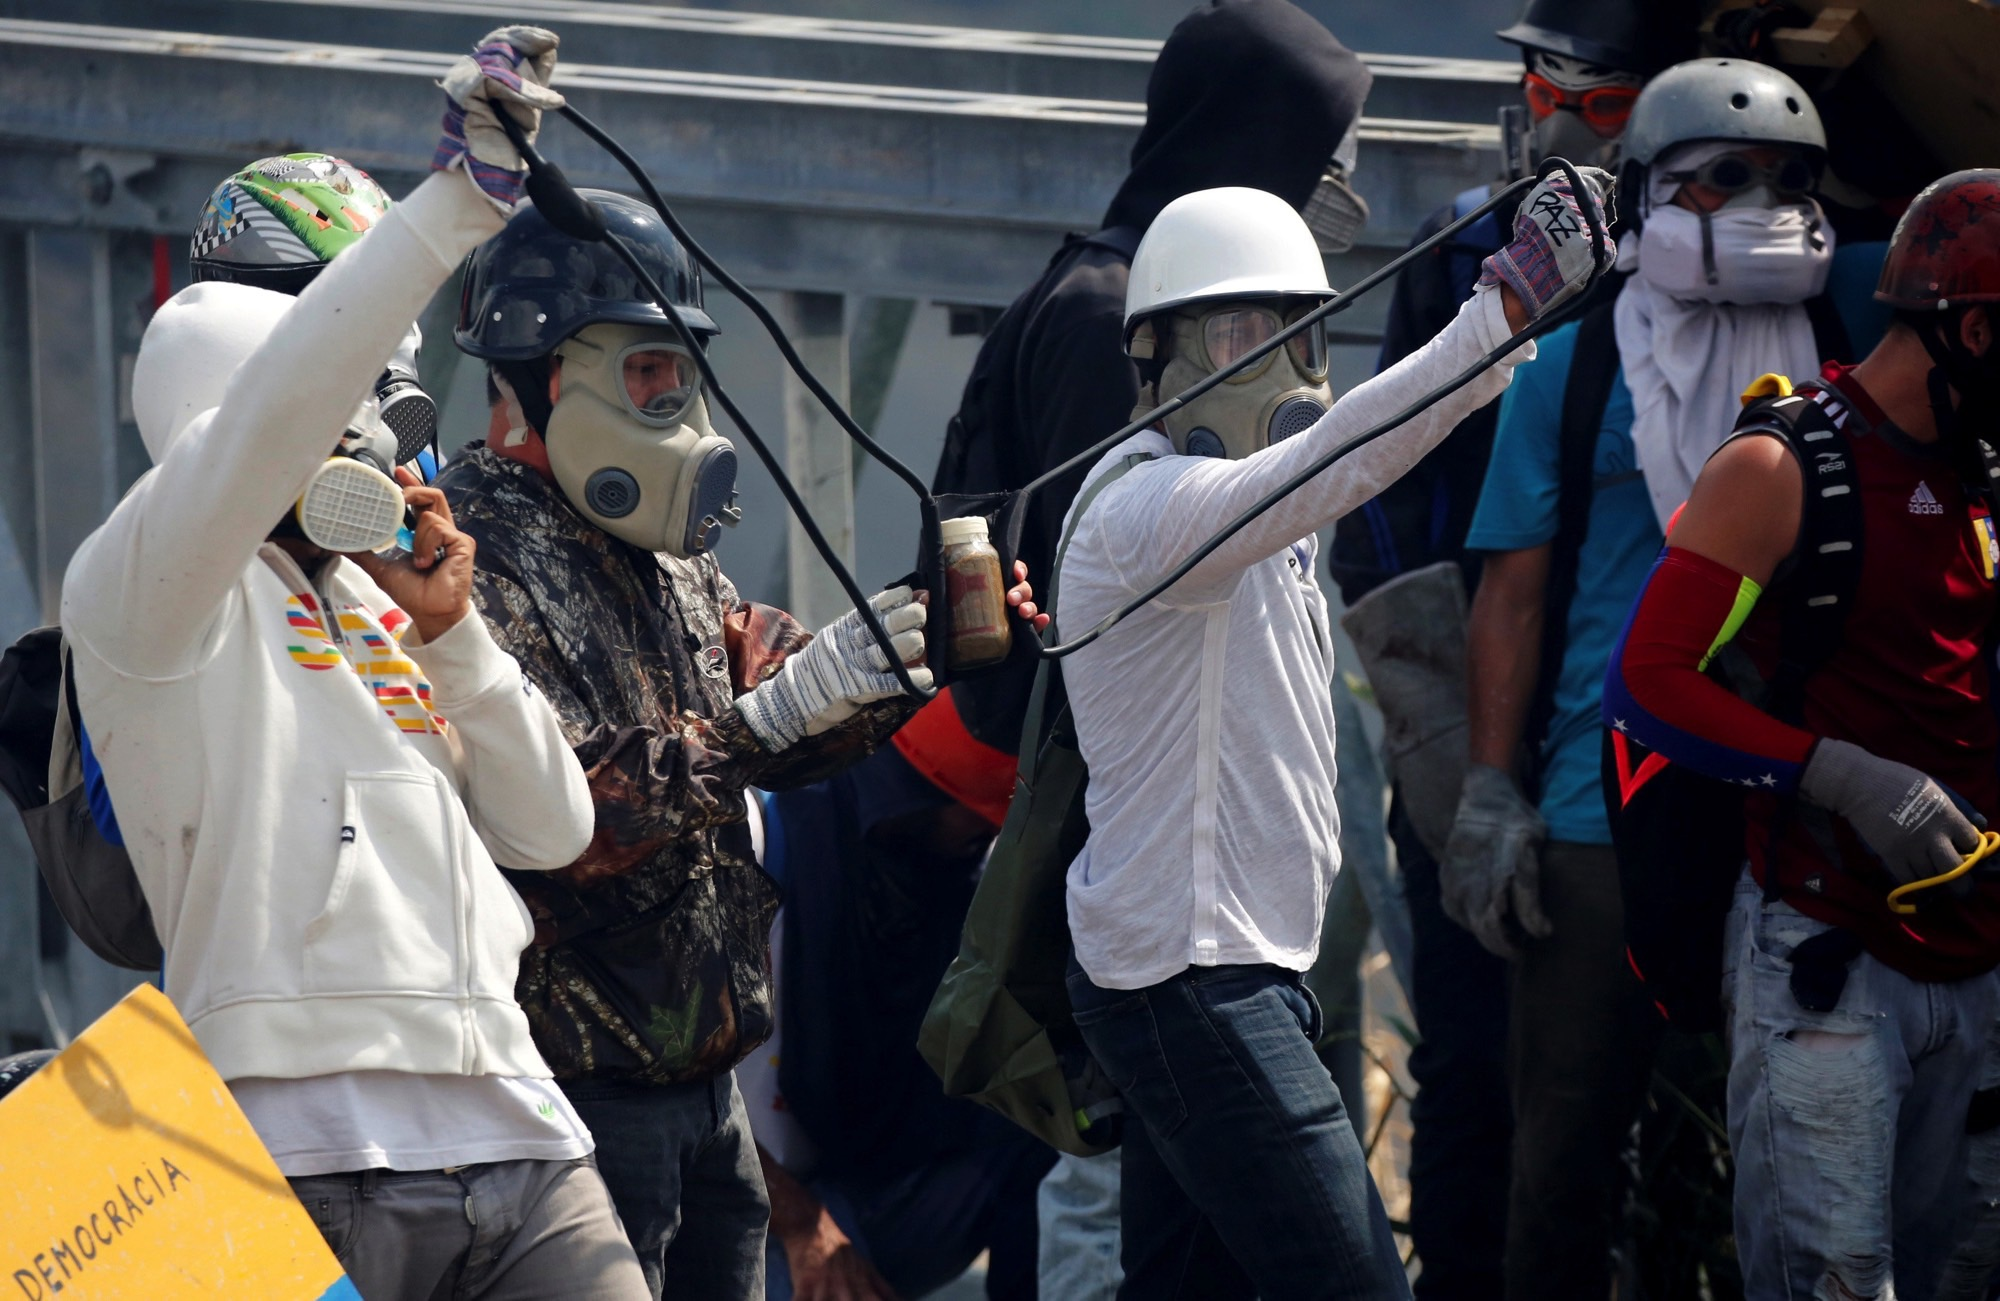 Venezuela: Protesters Lob Faeces at Soldiers as Violence Kills Two More